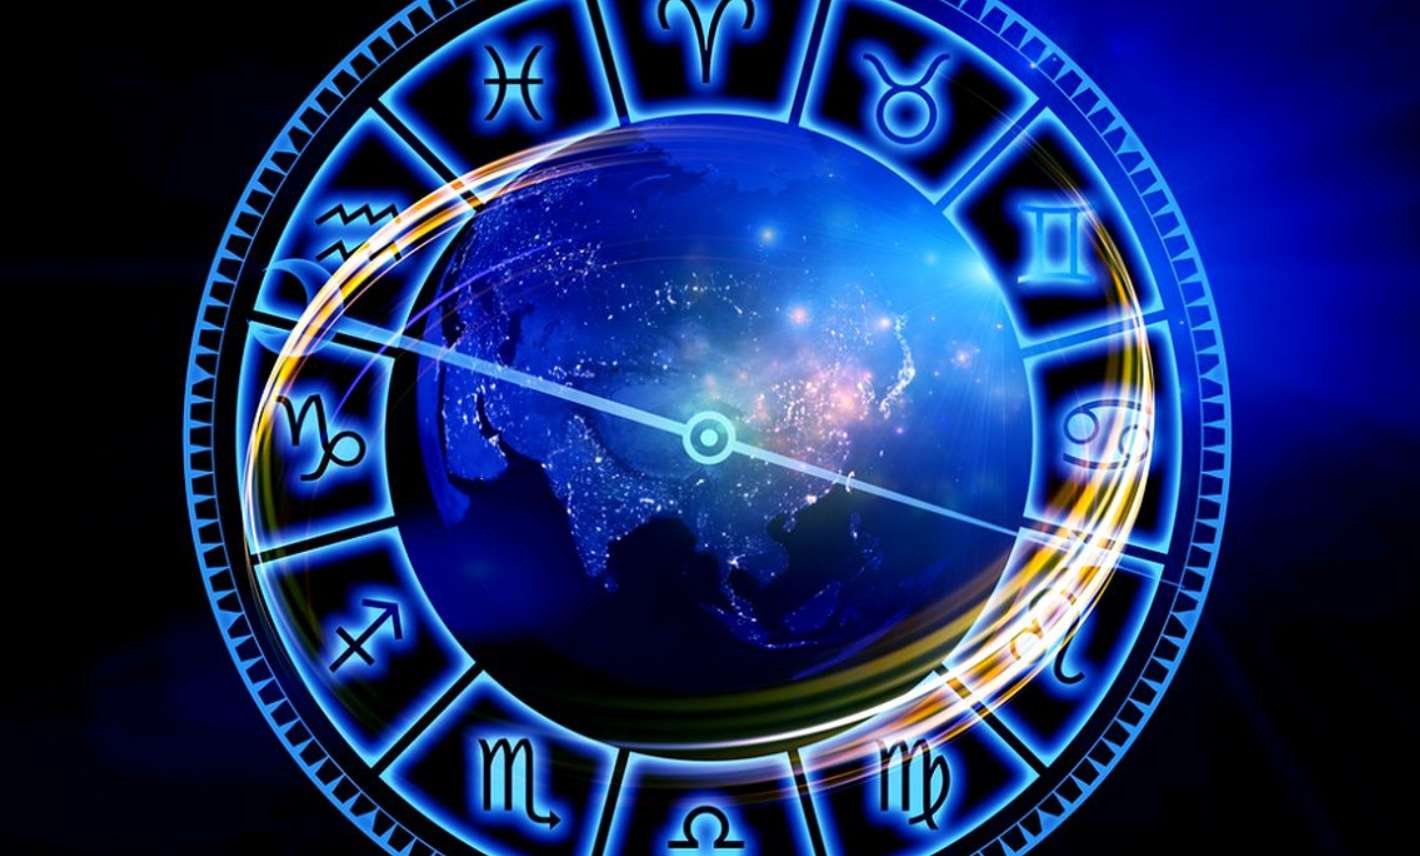 Daily horoscope 27 October 2019